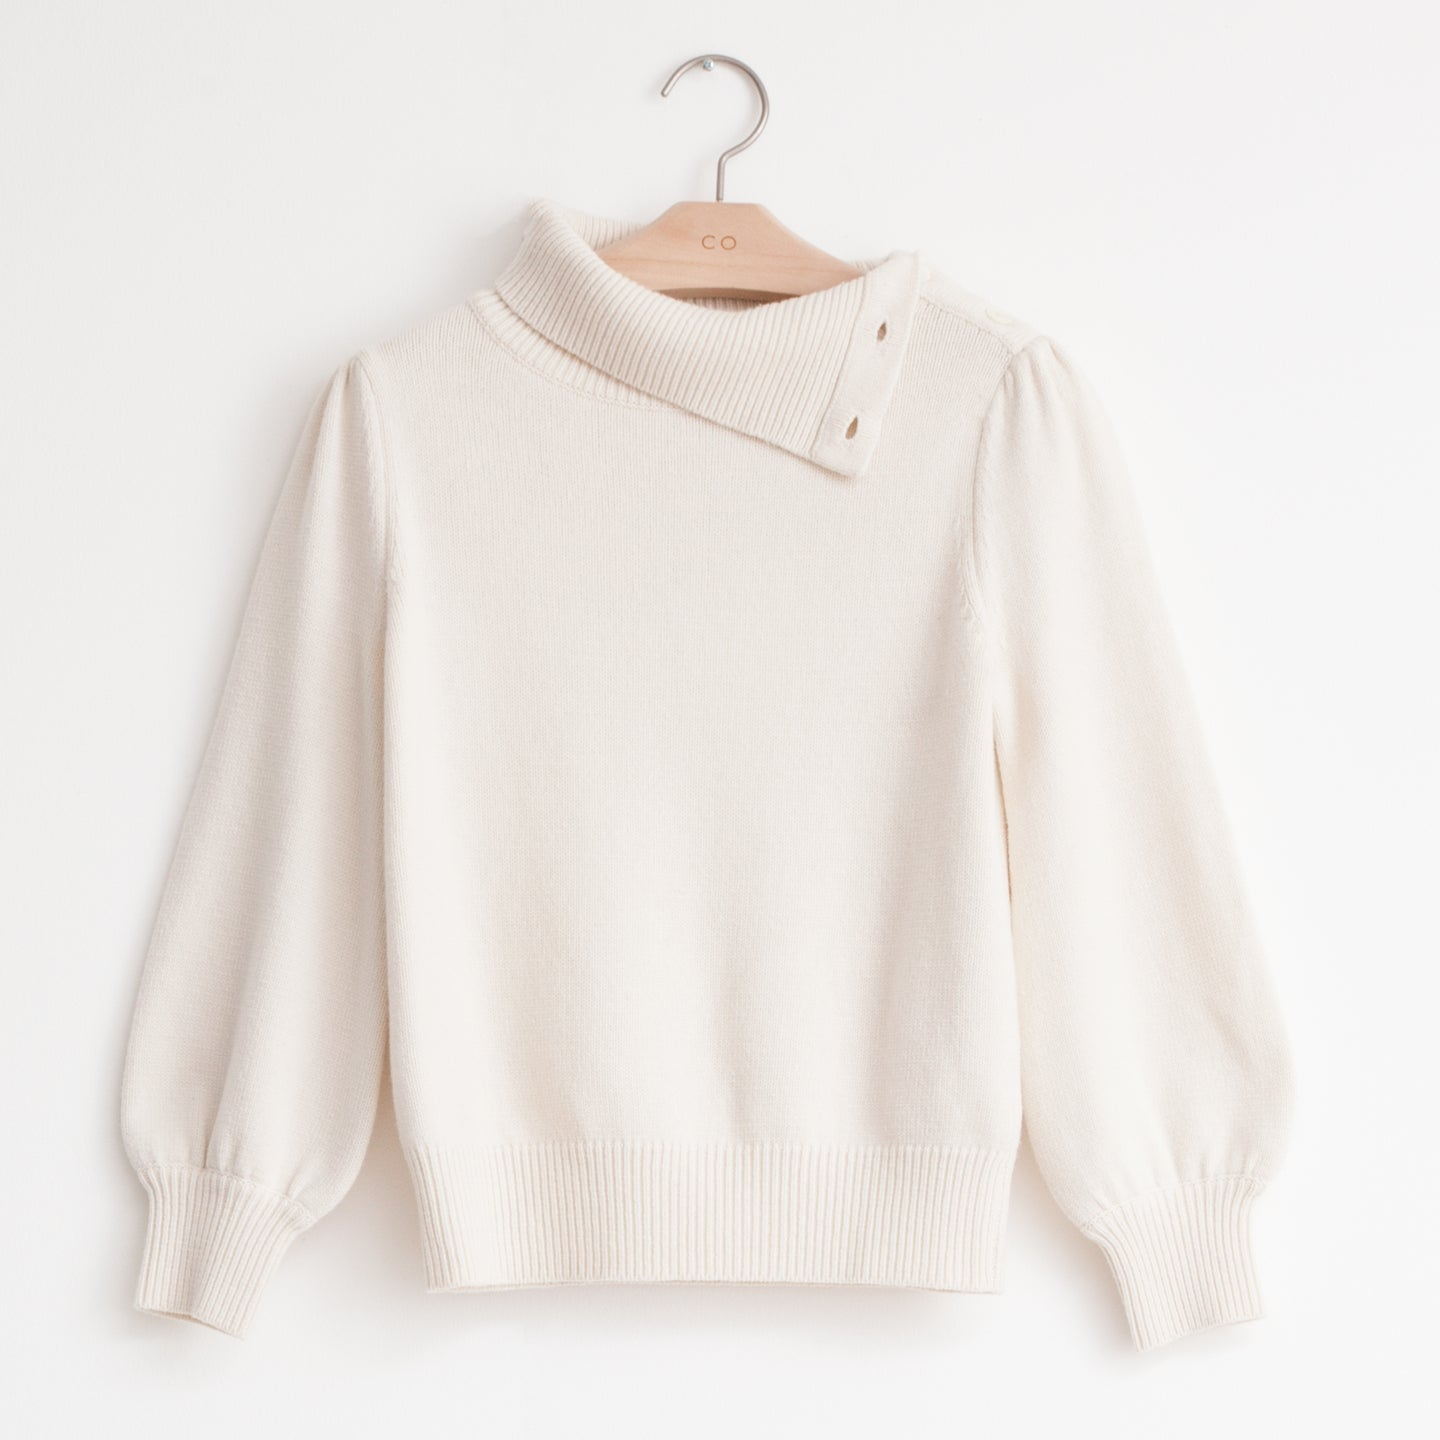 Button shoulder sweater with bishop sleeve in ivory wool cashmere - CO